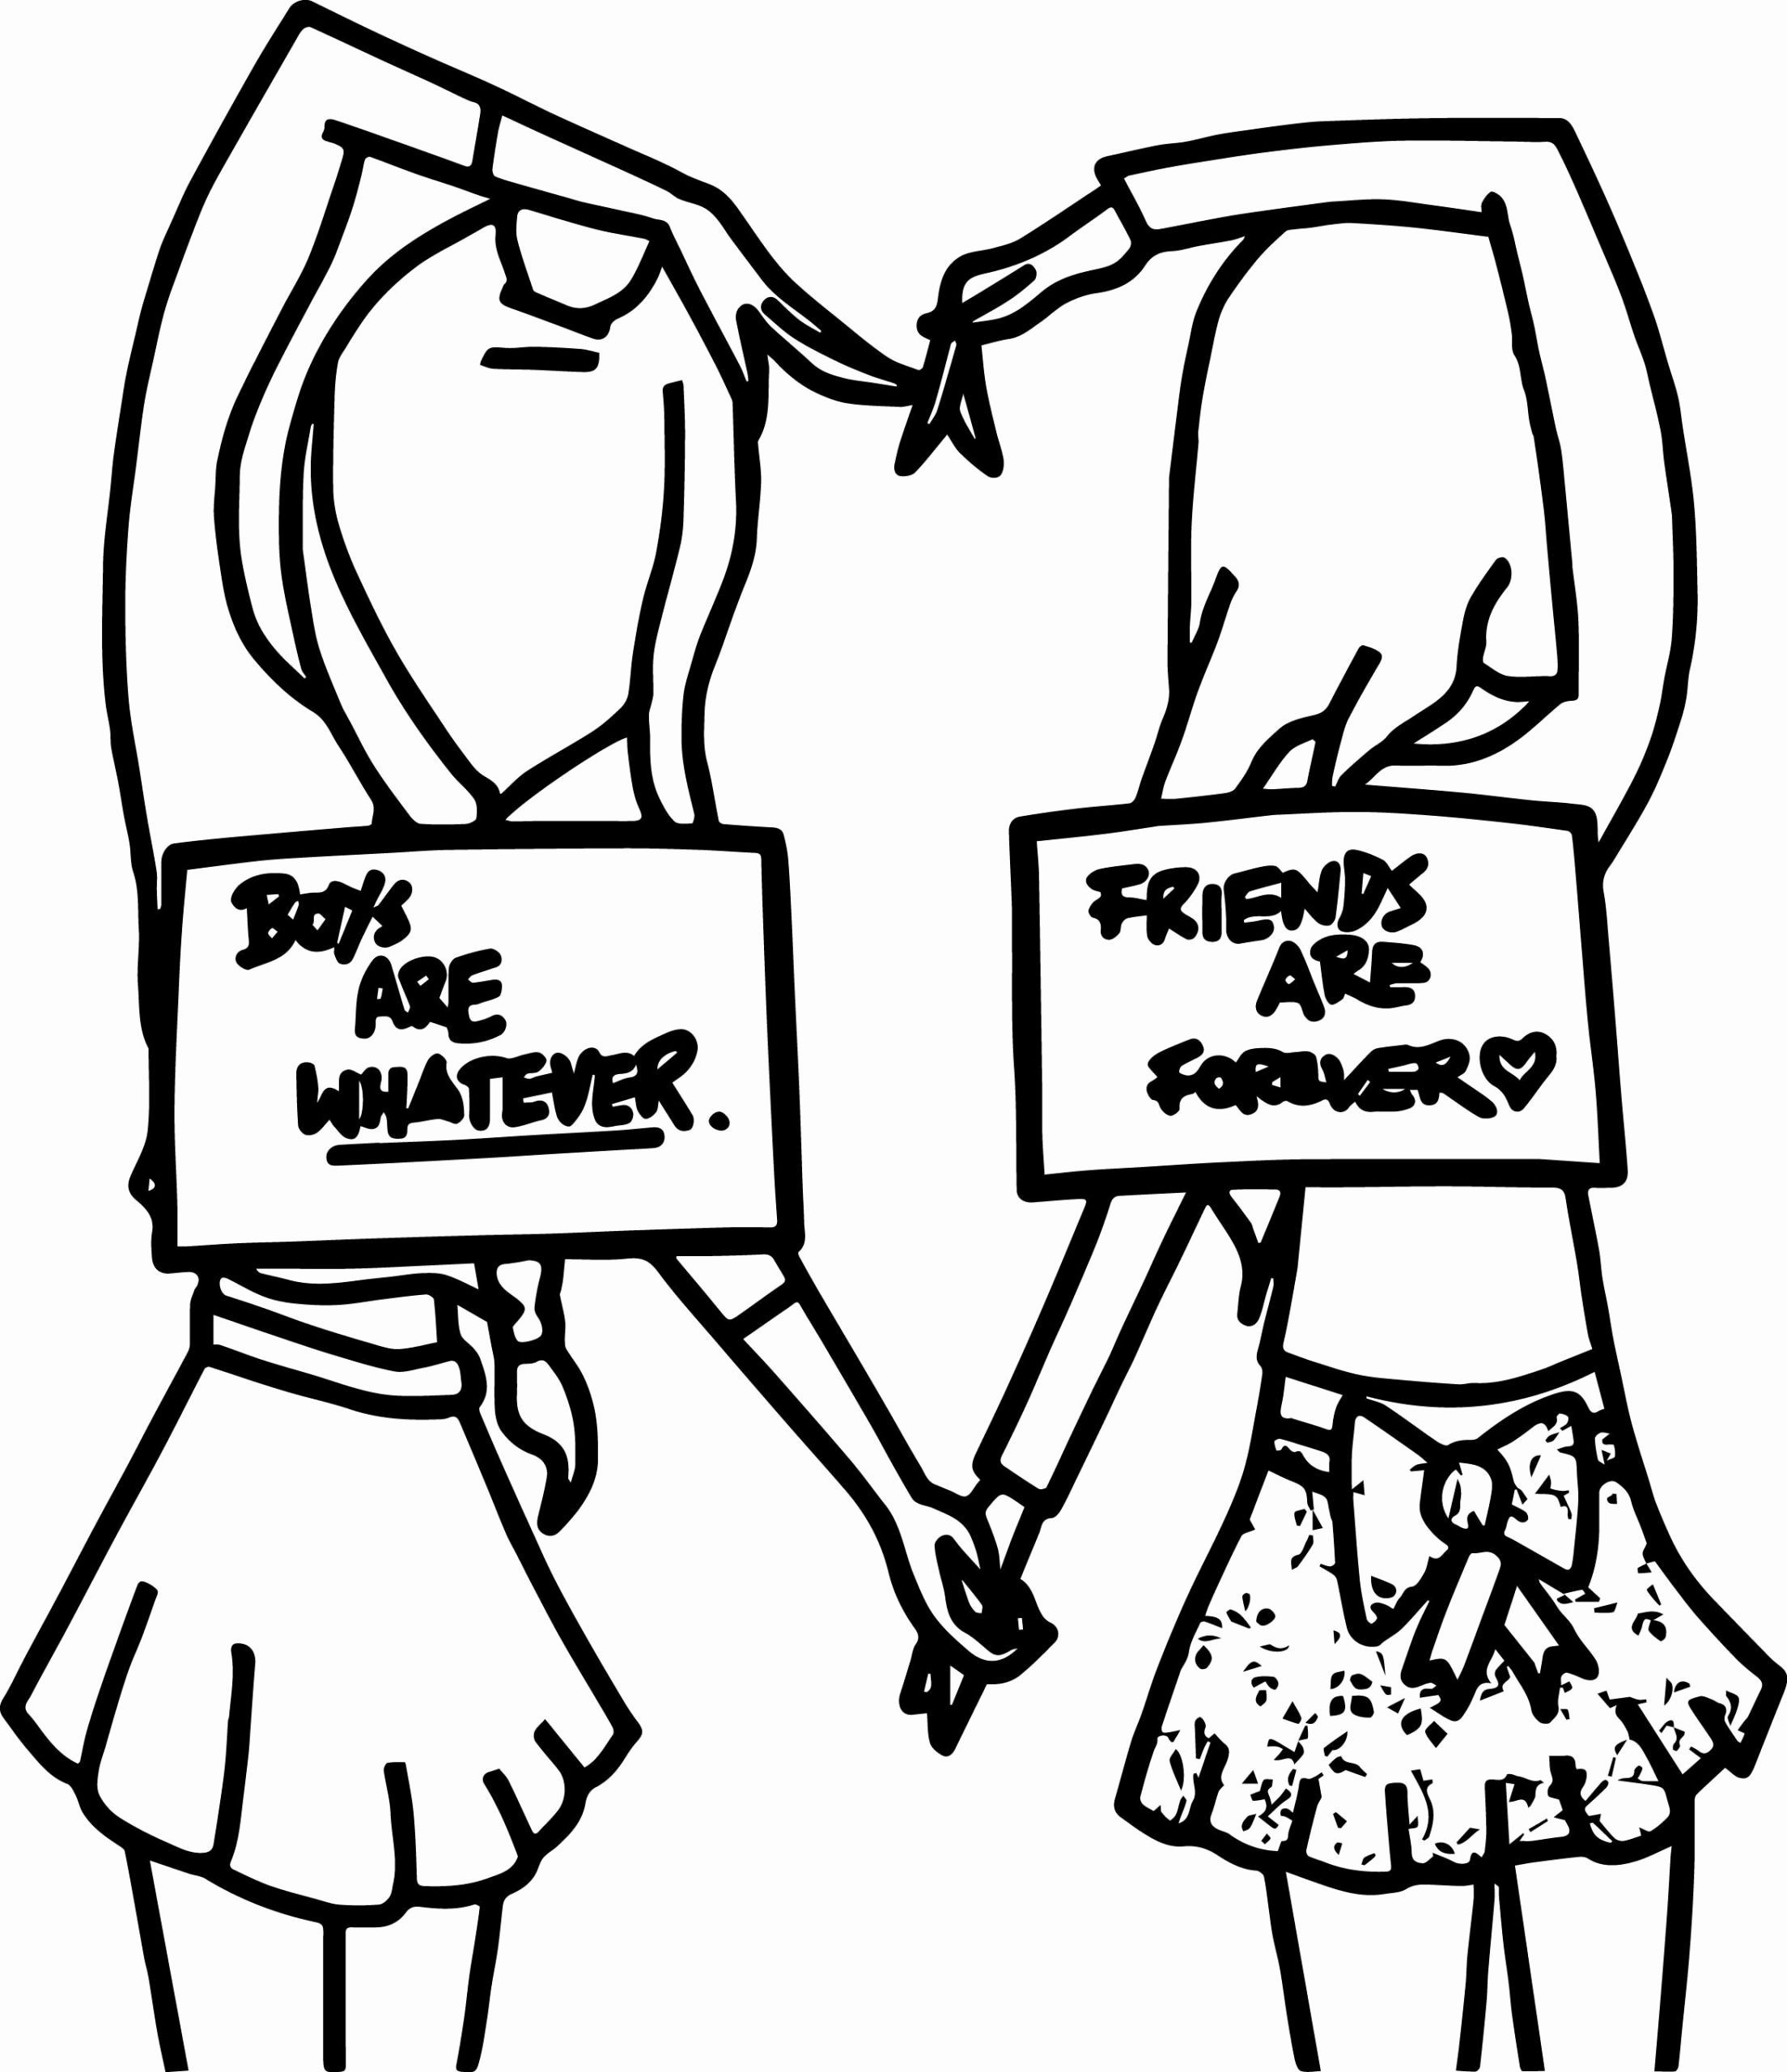 Anime Coloring Page Kawaii Beautiful Cute Anime Coloring Pages Awesome Best Coloring Pages Cute Coloring Pages Coloring Pages For Teenagers Cool Coloring Pages